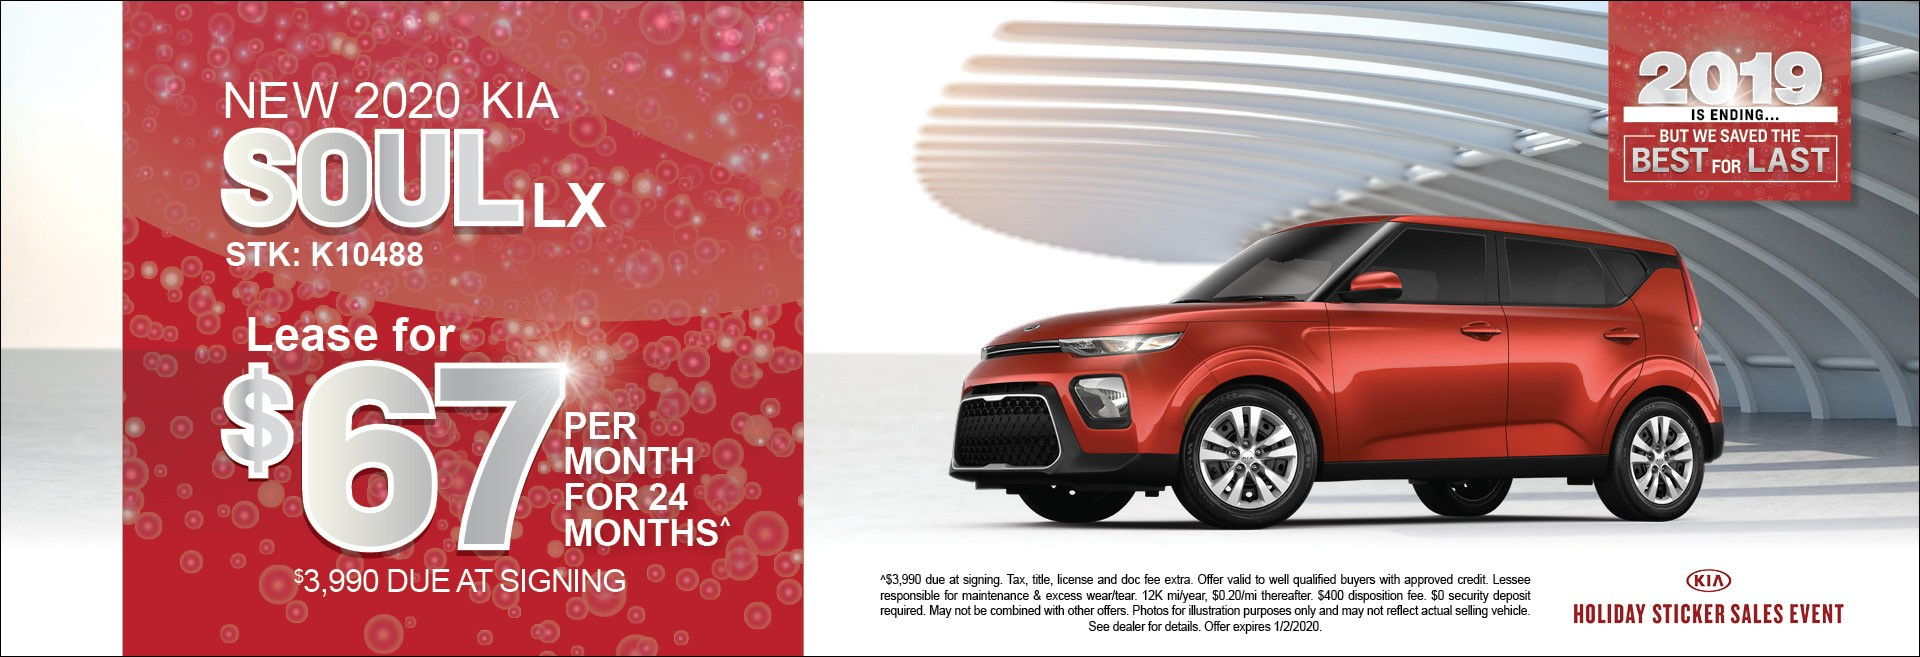 New 2020 Kia Soul LX  lease for $67/mo for 24mos